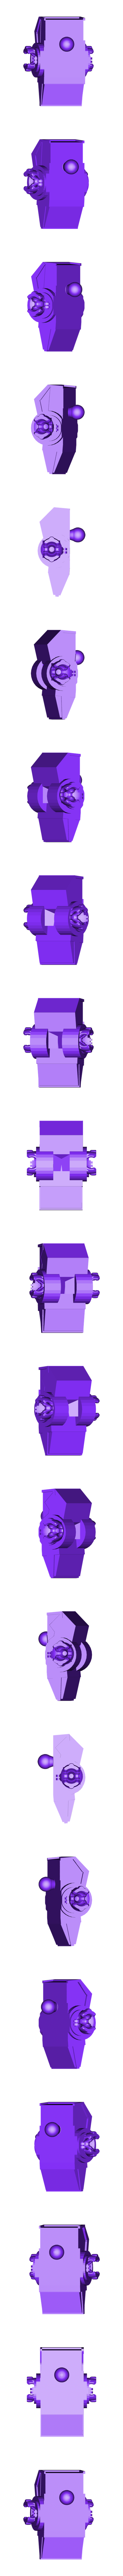 Hip_2.0.stl Download free STL file Ball Joint Mad Cat Mech • 3D printable object, mrhers2